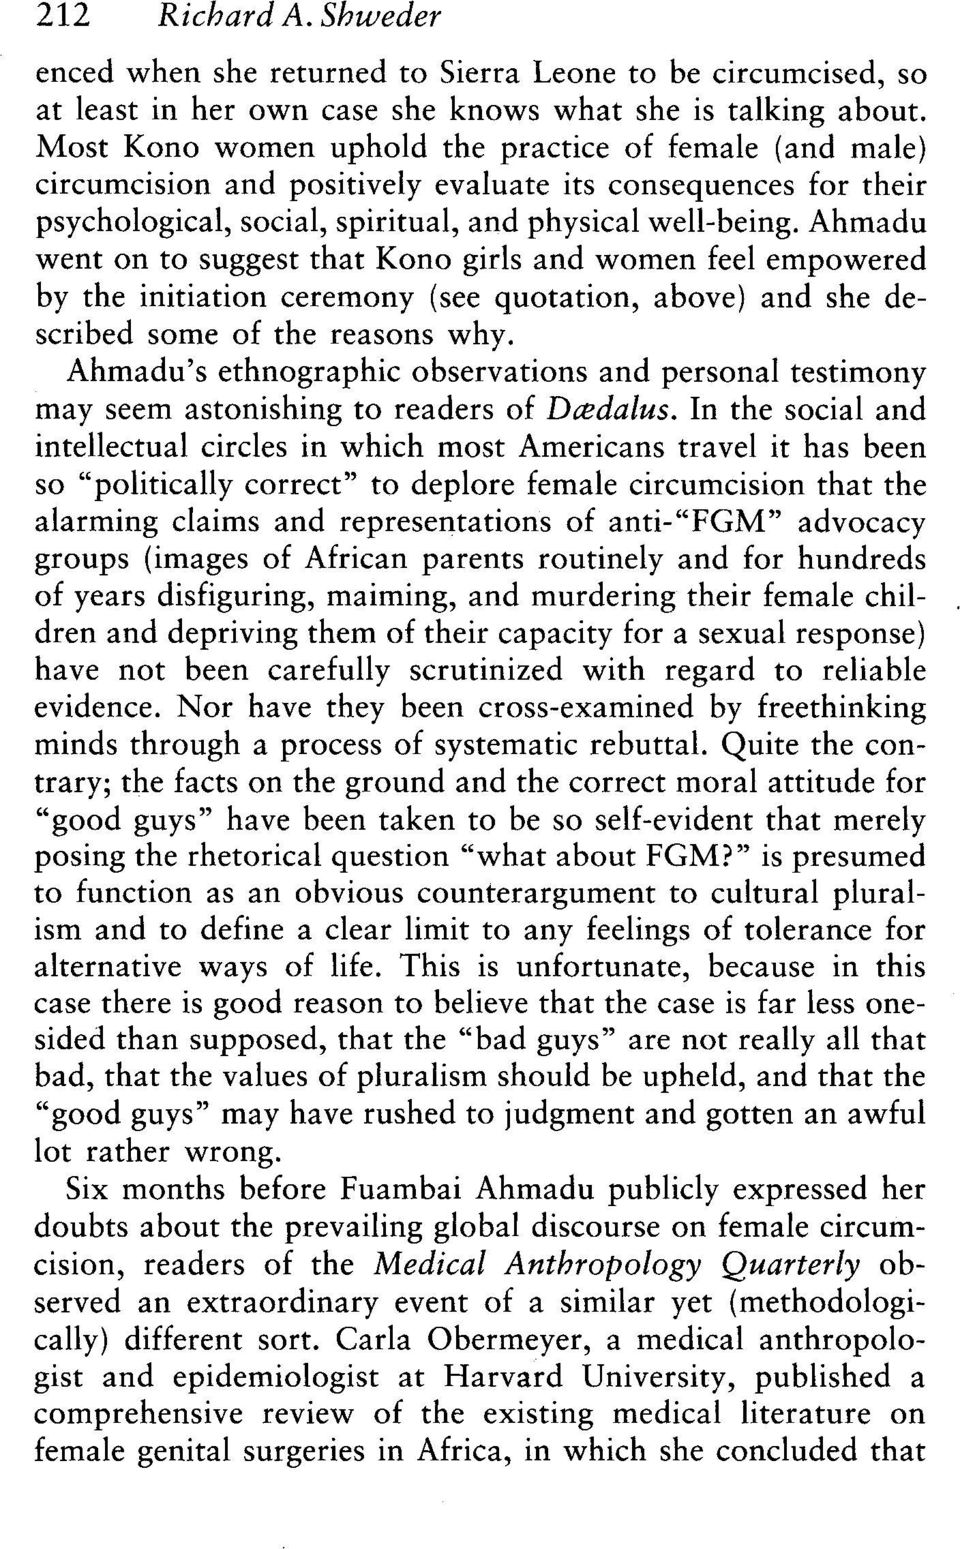 Ahmadu went on suggest that Kono girls and women feel empowered by the initiation ceremony (see quotation, above) and she de scribed some of the reasons why.